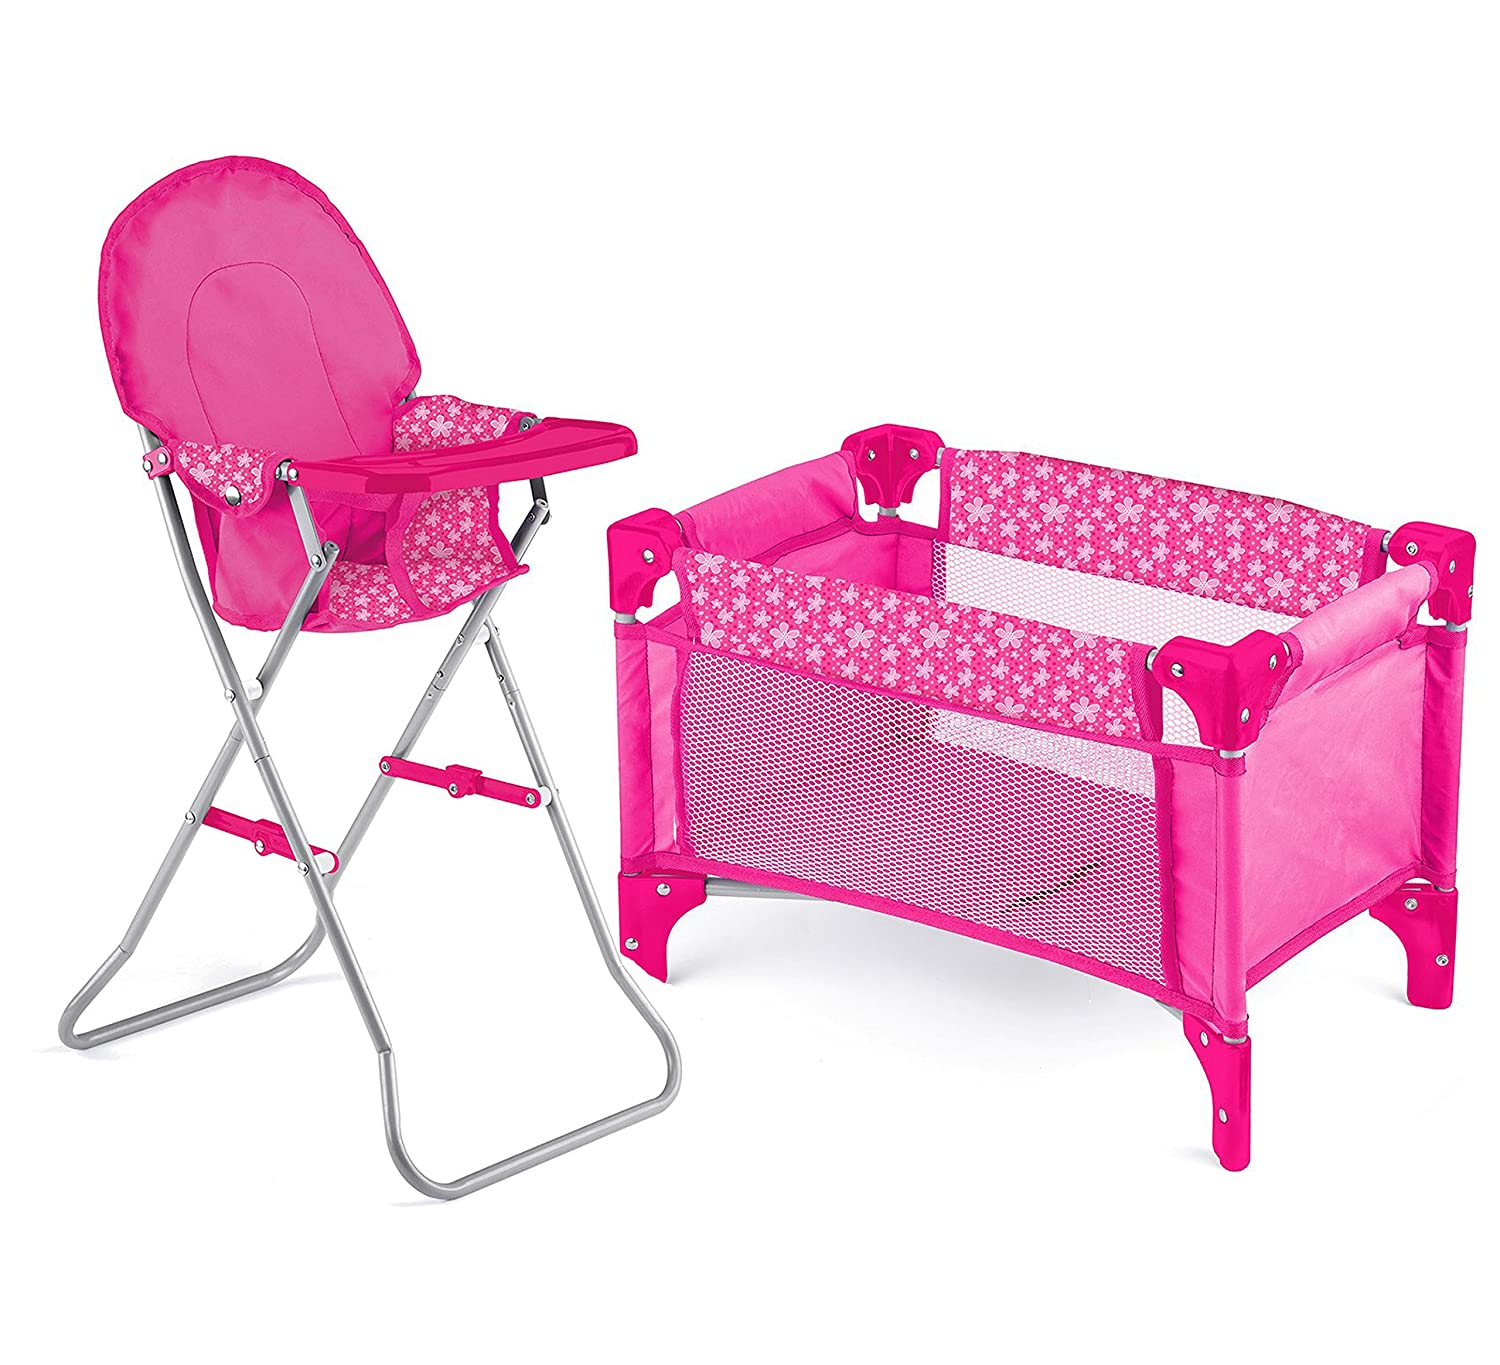 Best Of Doll High Chair Rtty1 Com Rtty1 Com